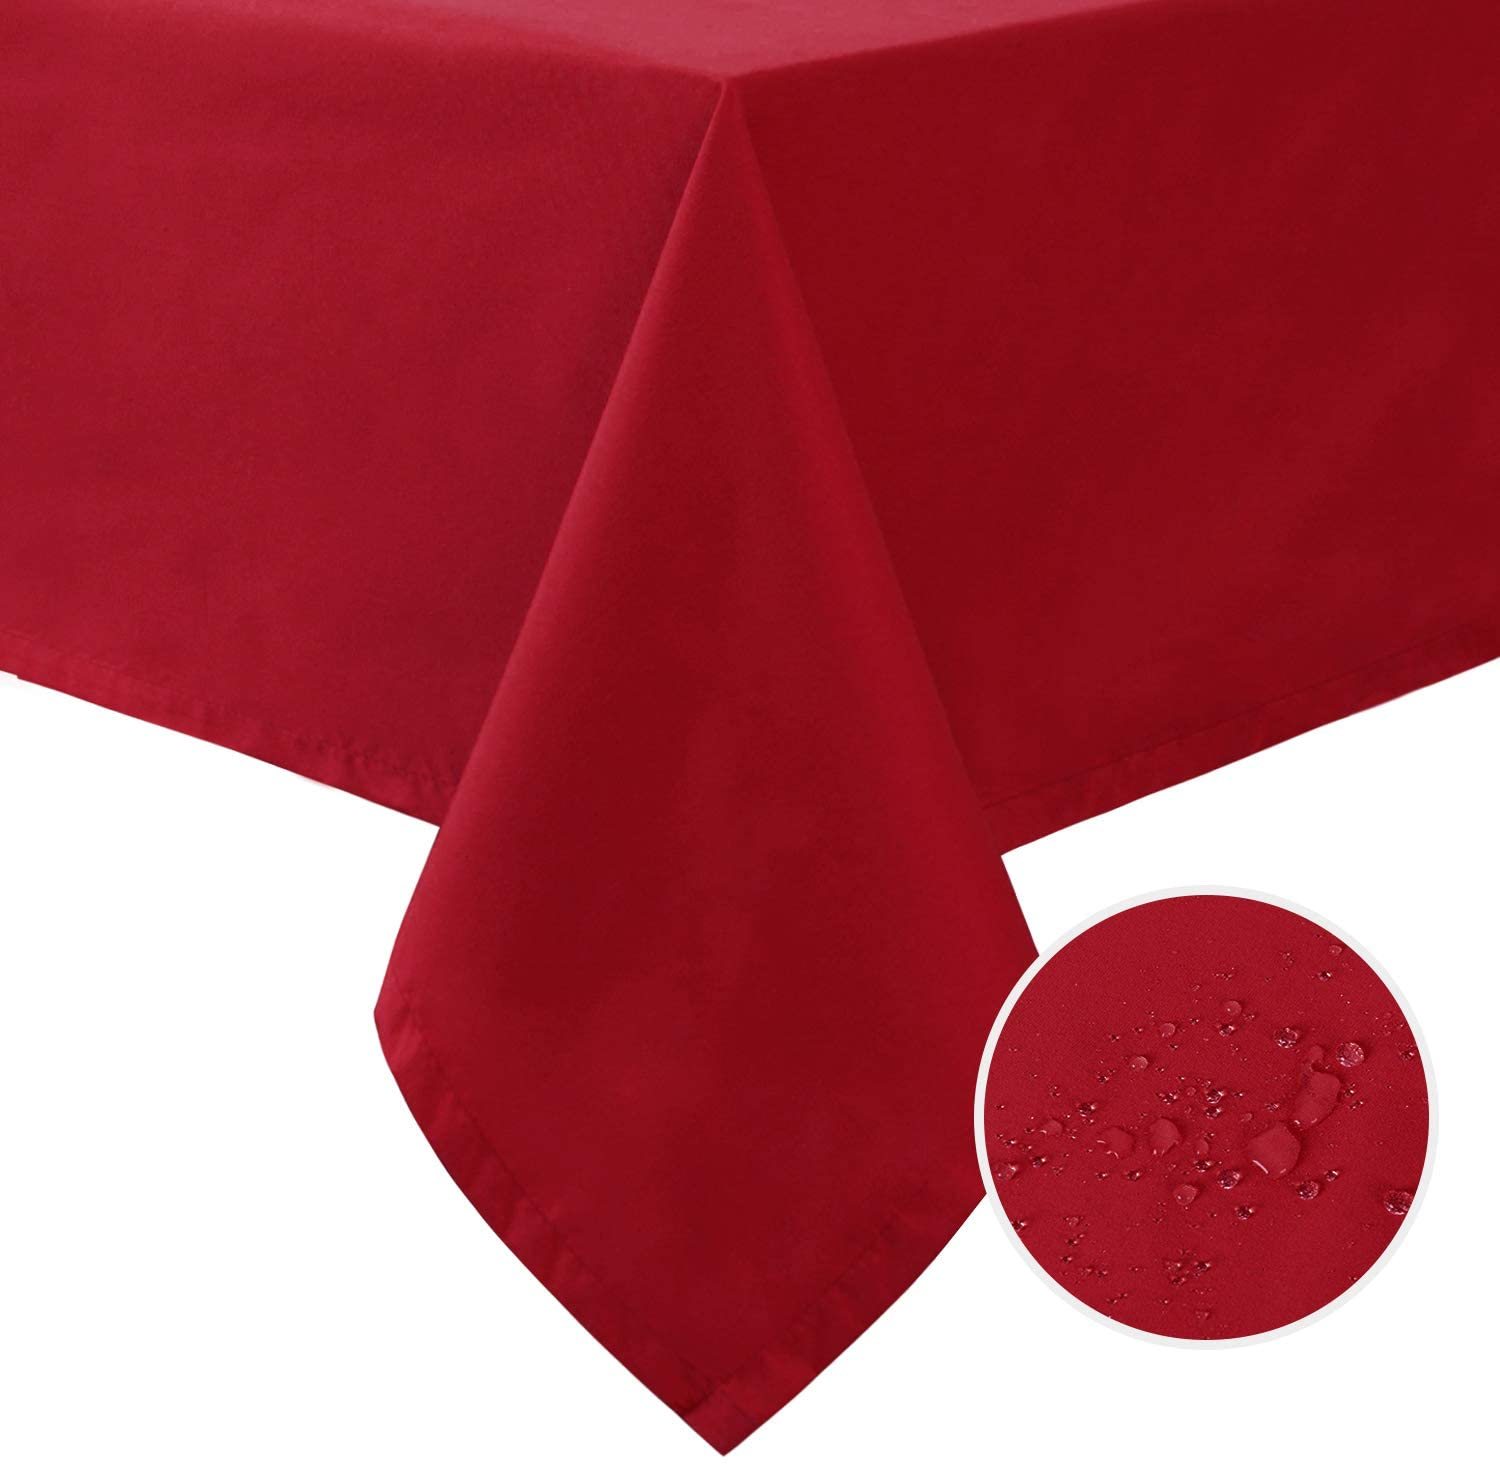 Hiasan Leakproof Square Tablecloth with Black TPU Backing - Water Resisitant Stain Resistant Washable Polyester Table Cloth for Kitchen and Dining Room, Burgundy, 54 x 54 Inch